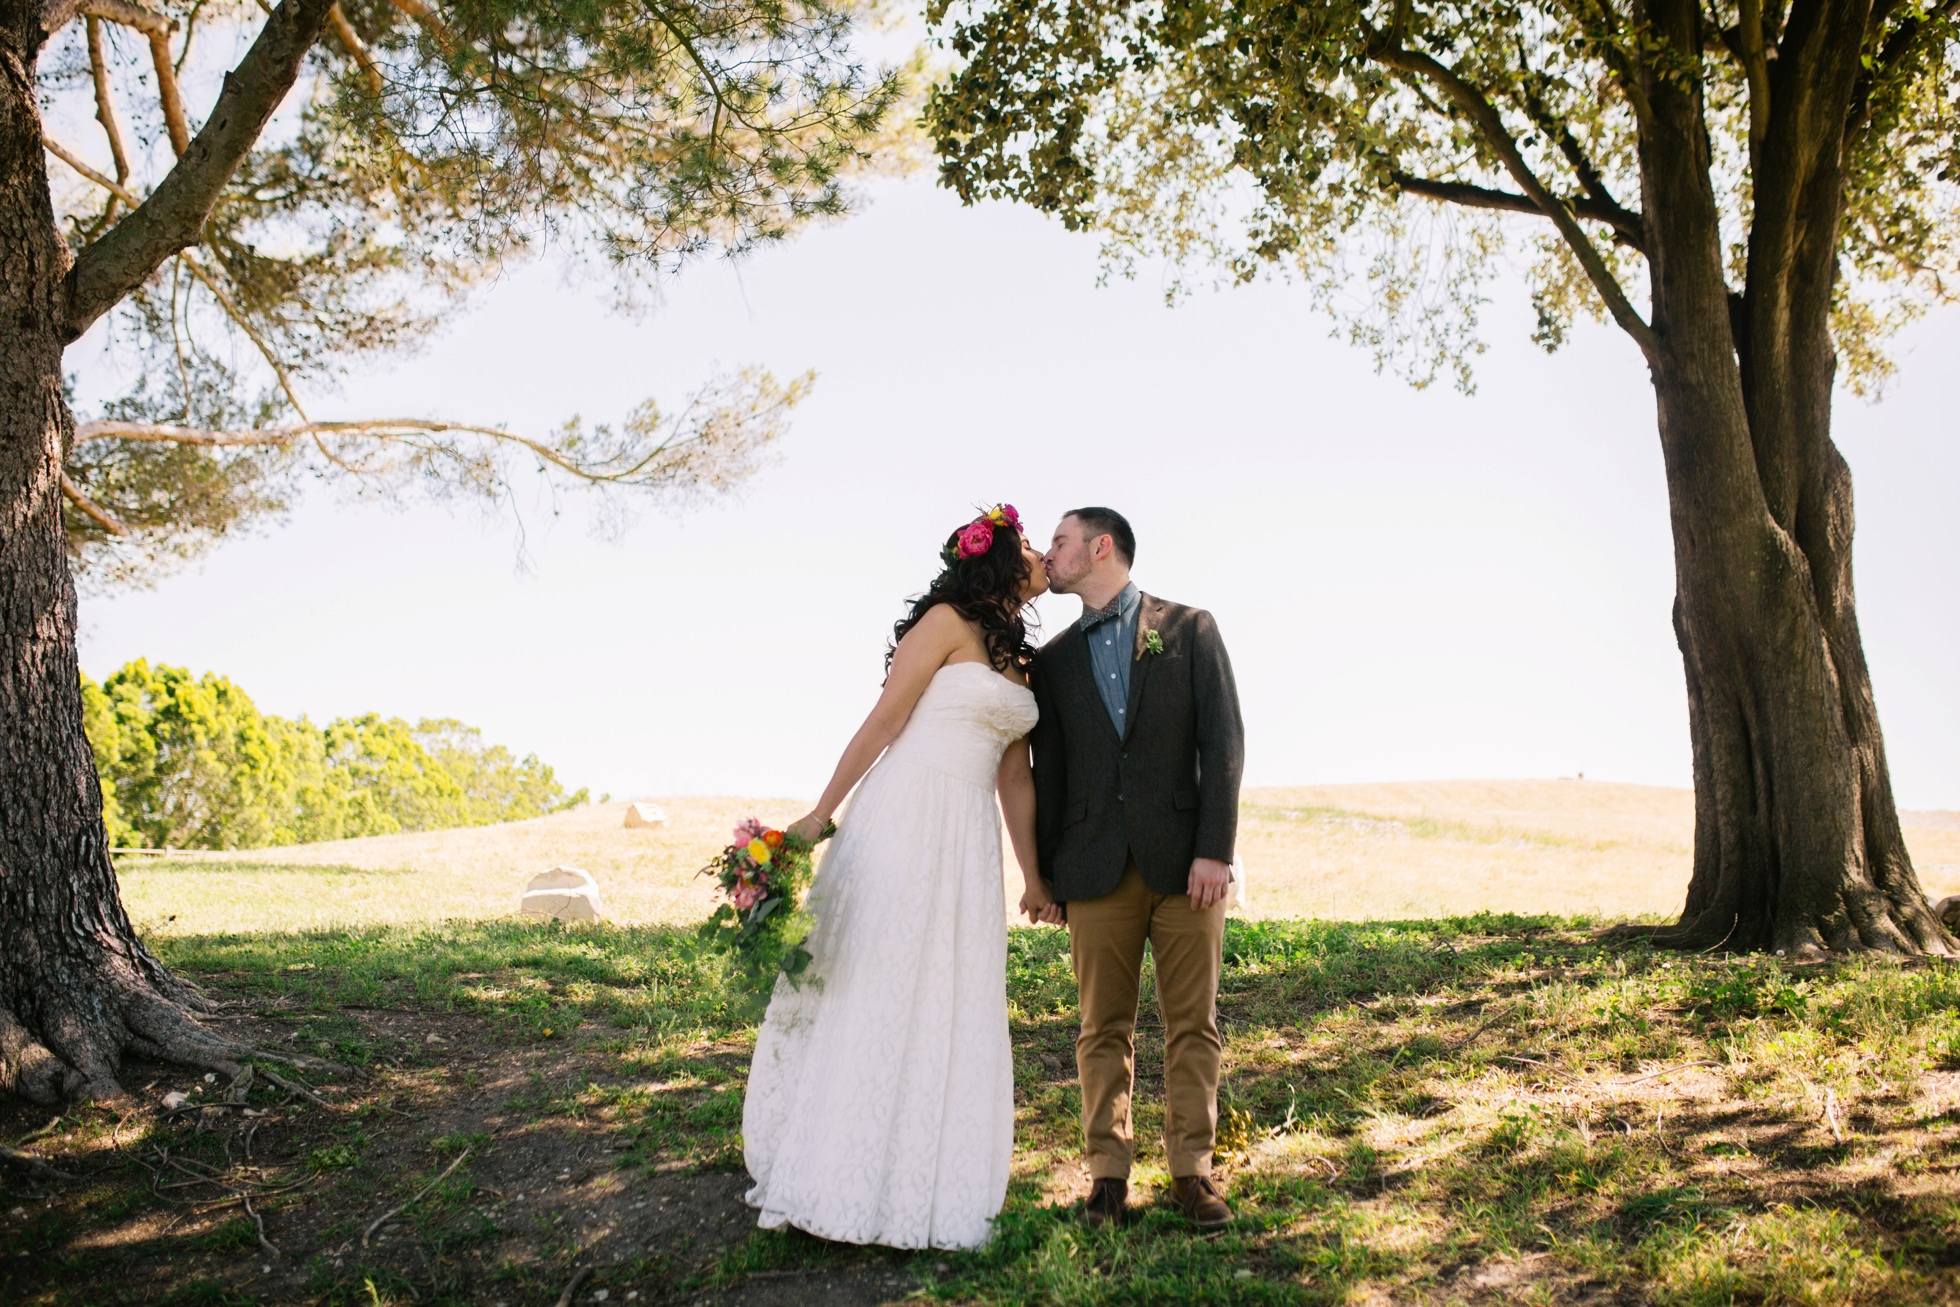 Palos Verdes Southern California Destination Wedding | brittneyraine.com 0033